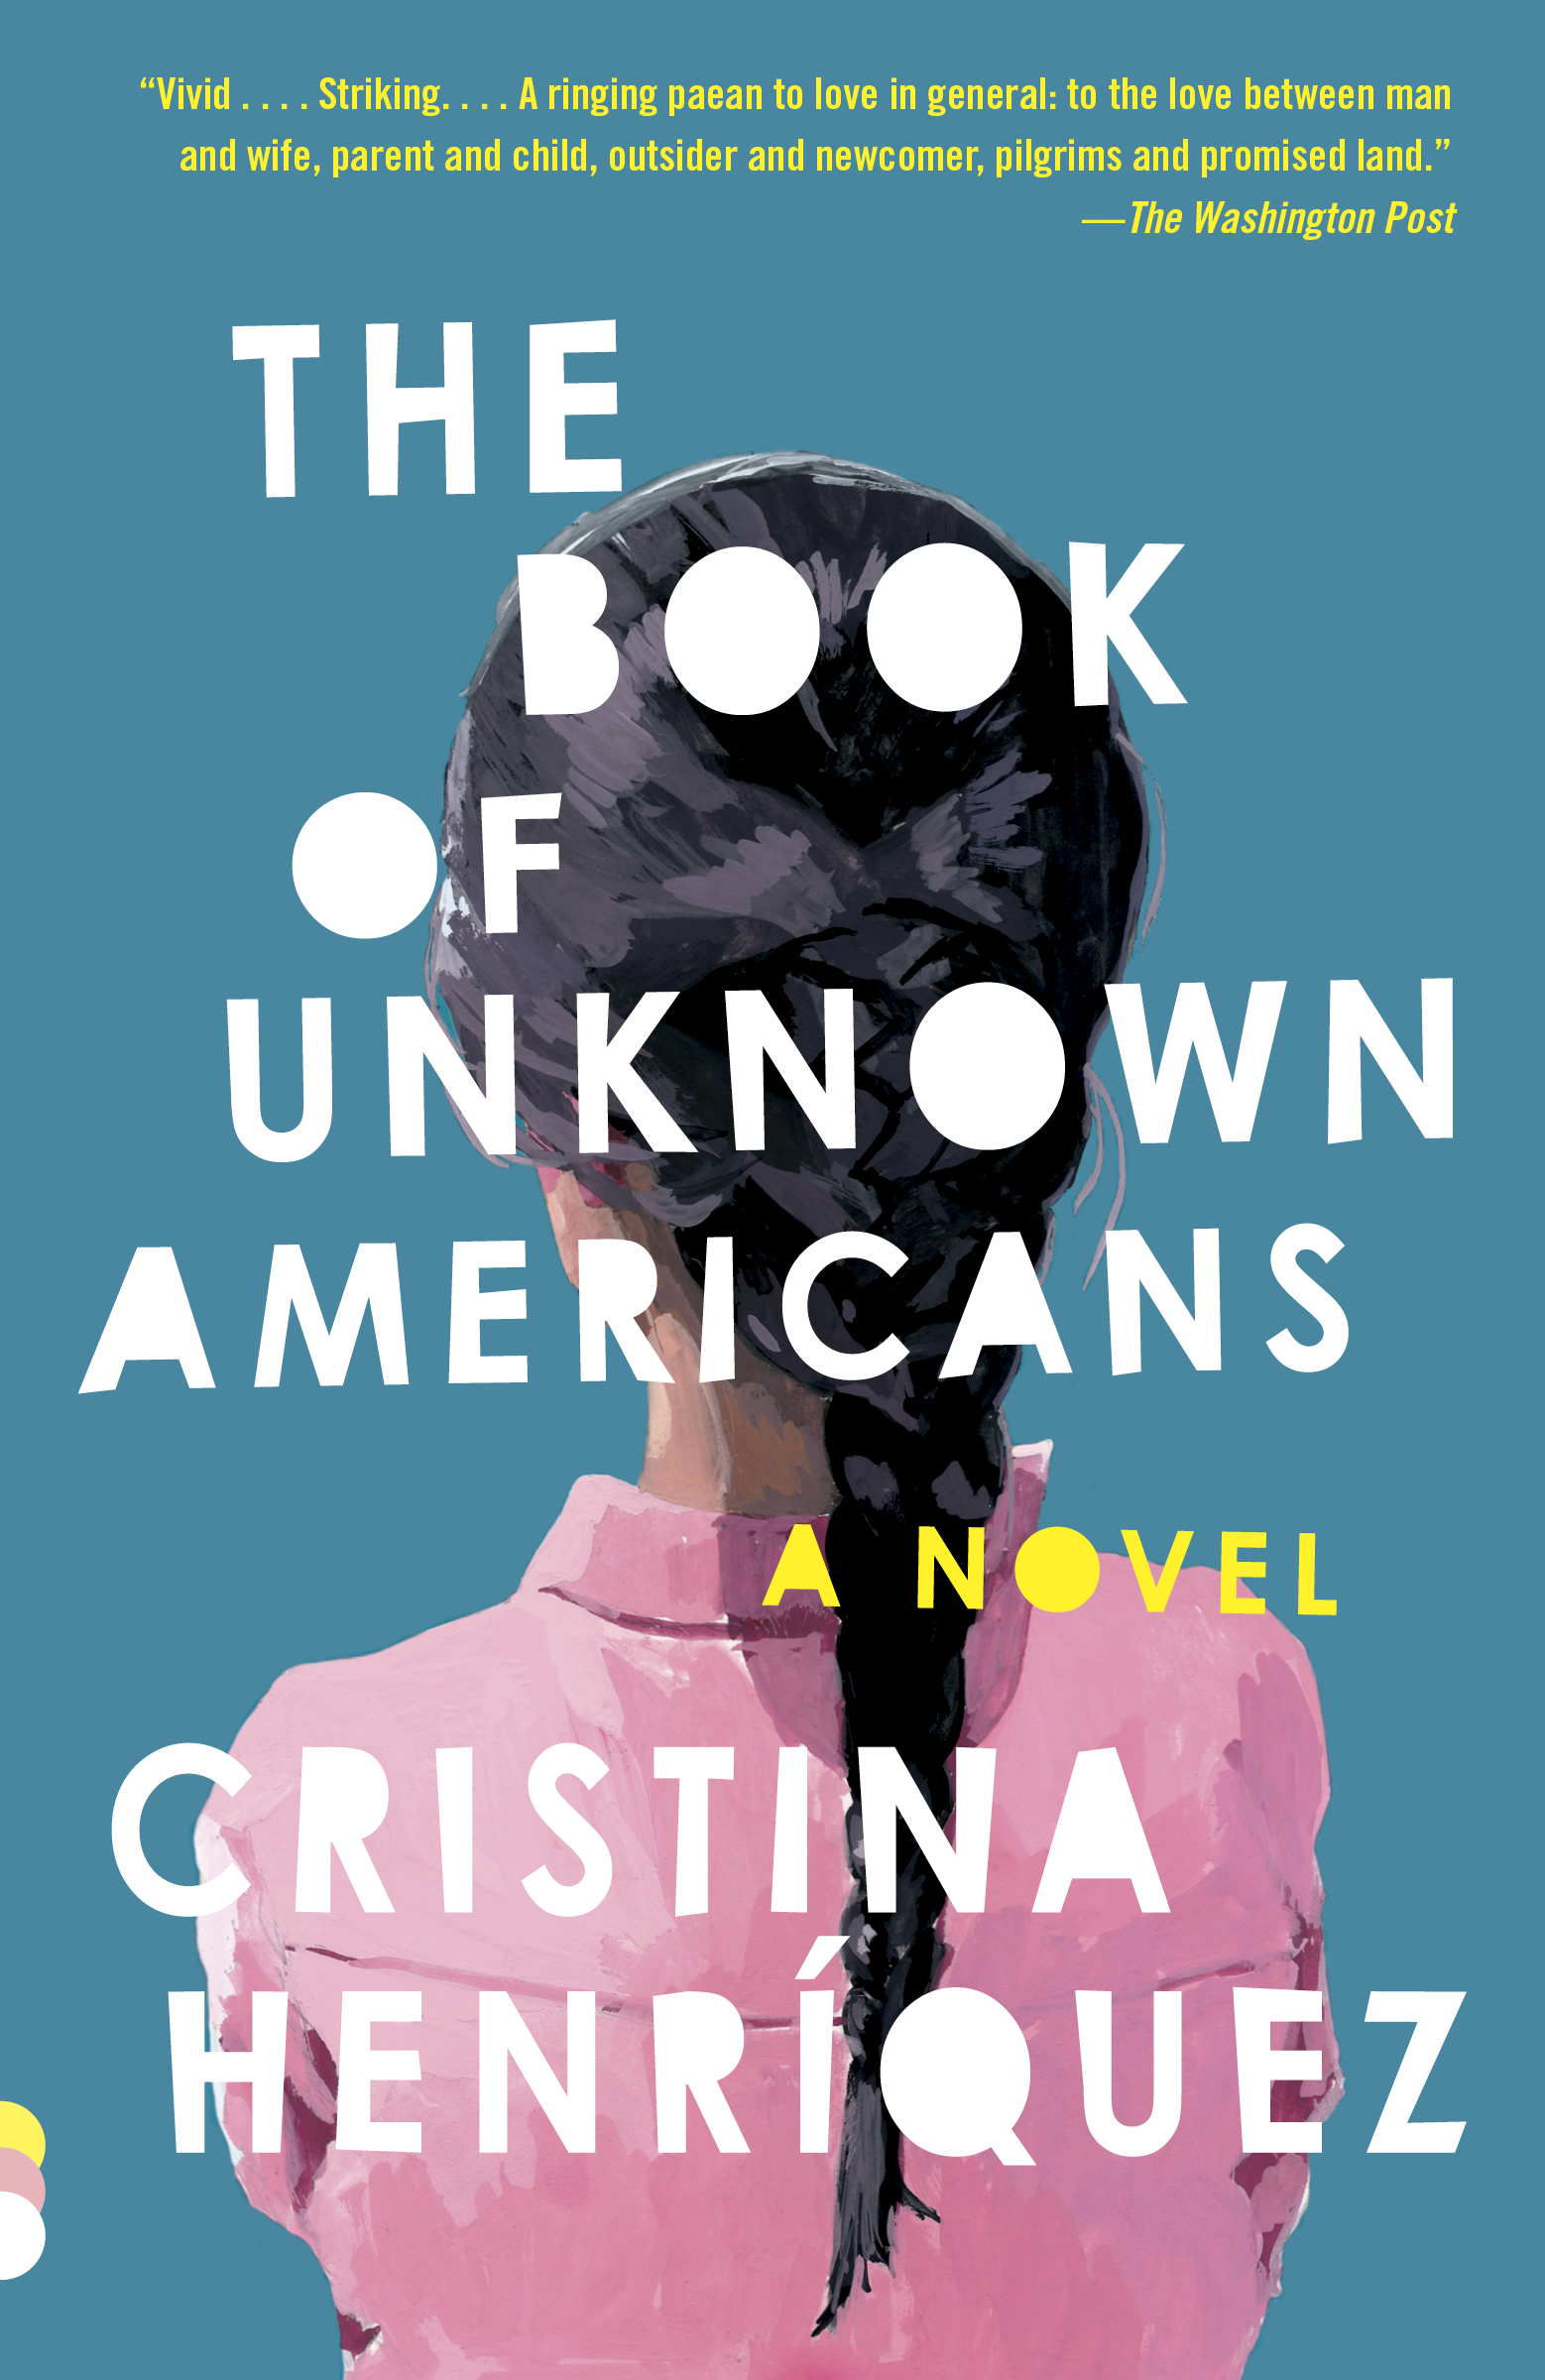 Cover art for The Book of Unknown Americans by Cristina Henríquez